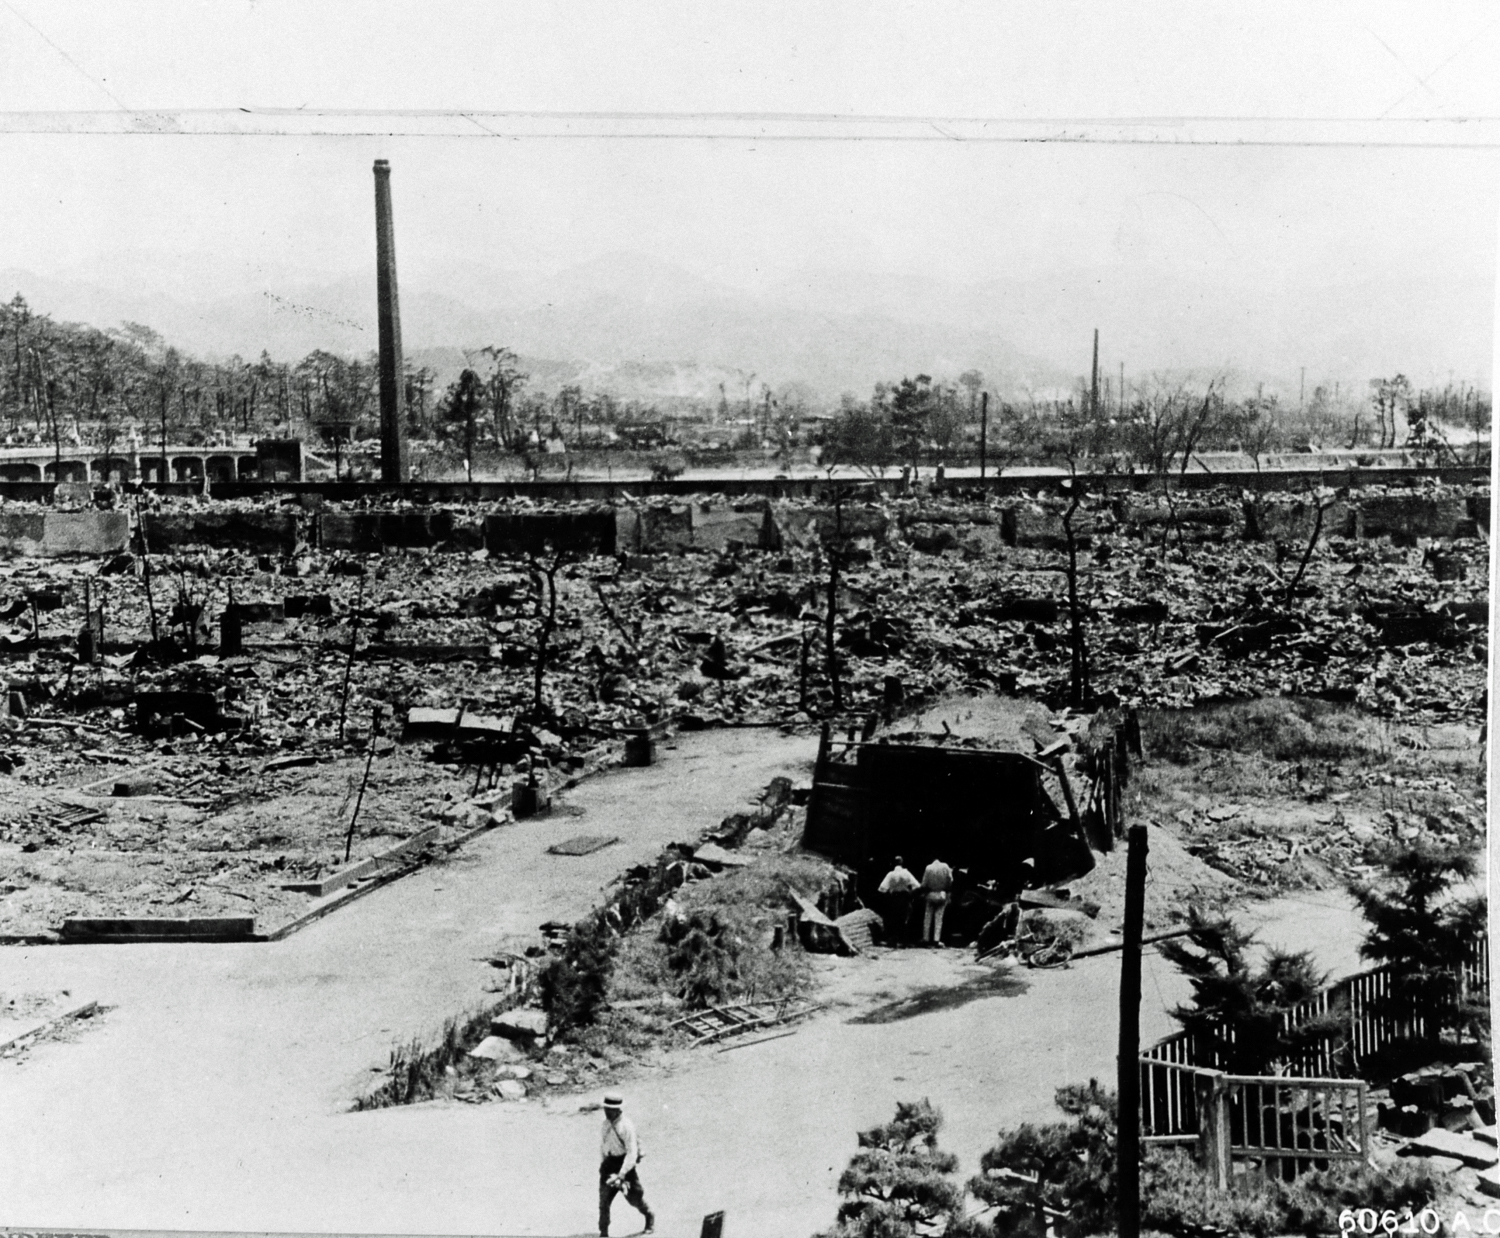 Hiroshima Japan In Ruins After The Dropping Of Atomic Bomb August 6